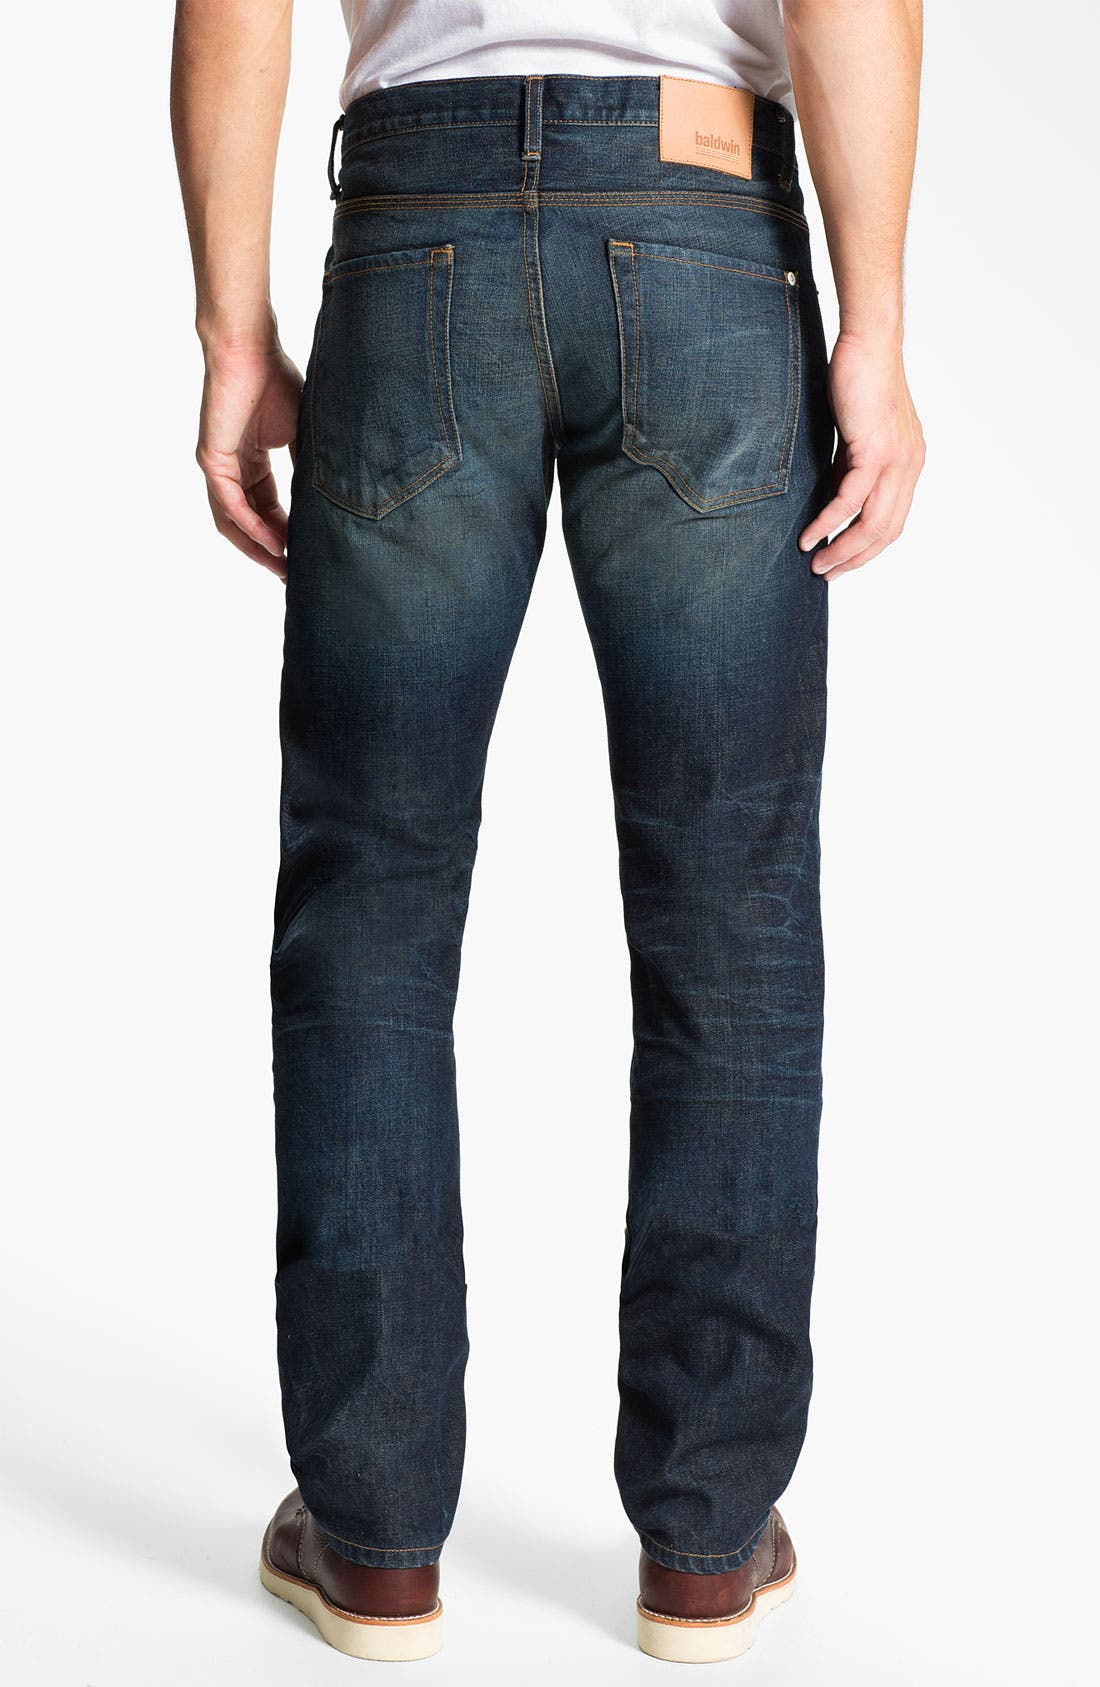 Alternate Image 1 Selected - Baldwin 'Reed' Straight Leg Jeans (John)